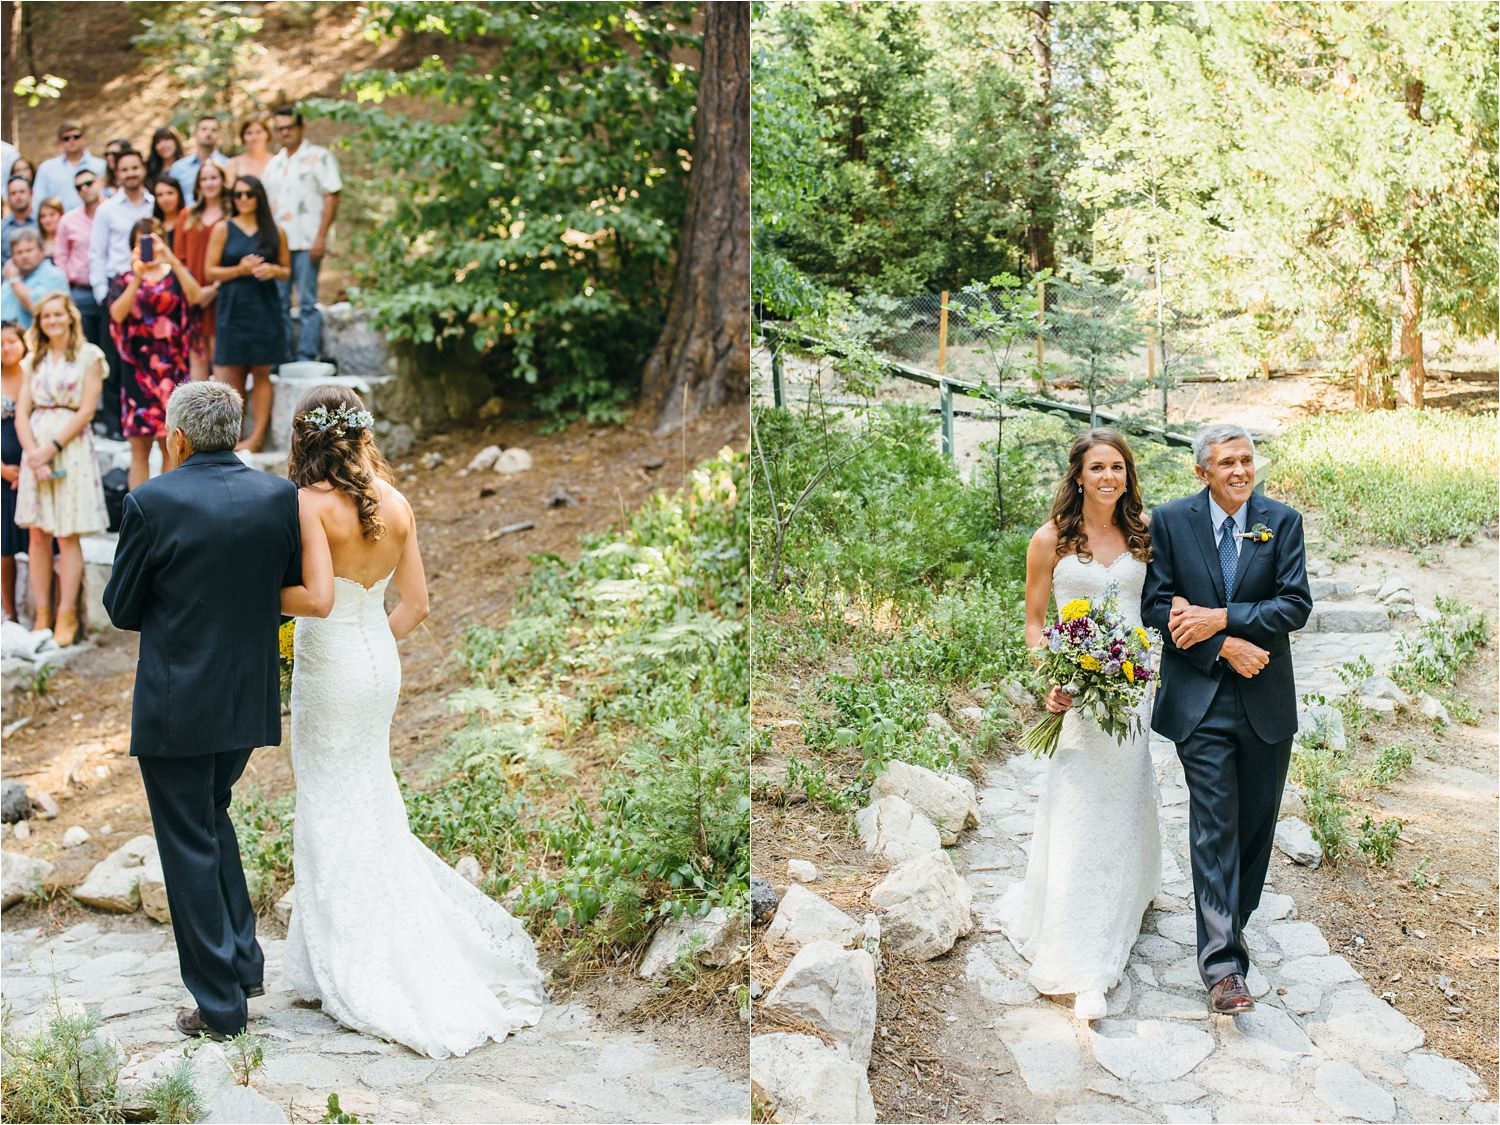 Mountain Bride - Bride Walking Down the Aisle - Wedding Ceremony Ideas - Adventurous Bride - https://brittneyhannonphotography.com